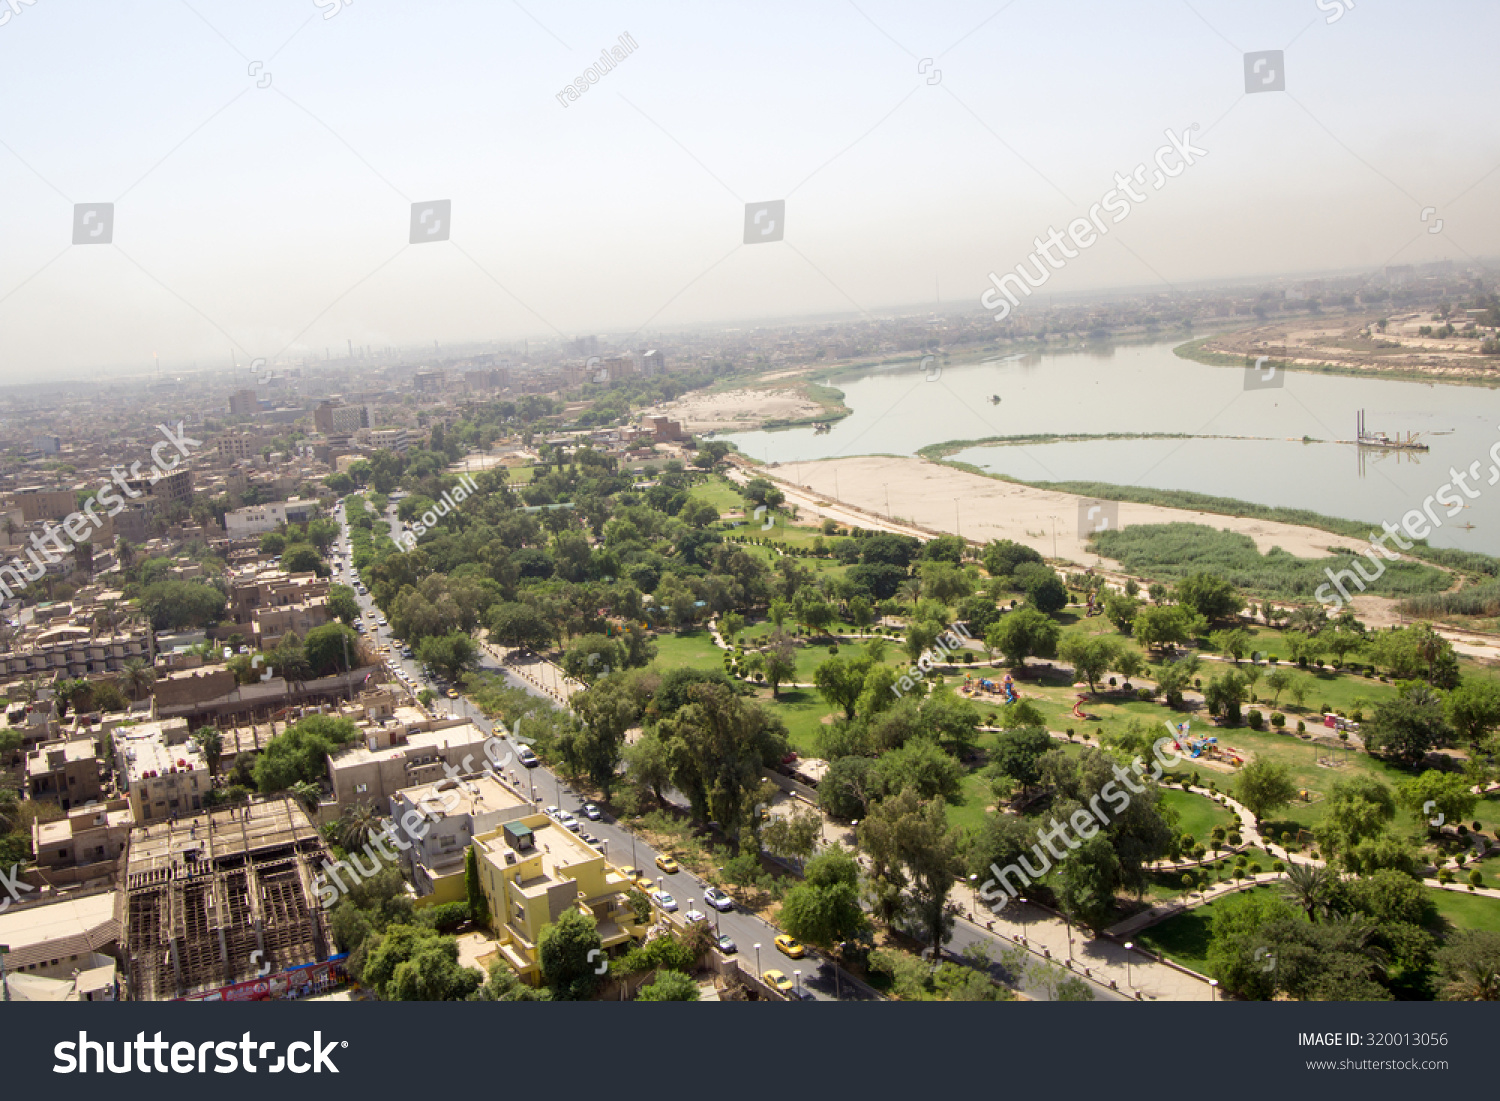 Baghdad Iraq a September 16 2015 Aerial photo of the city of Baghdad Iraq